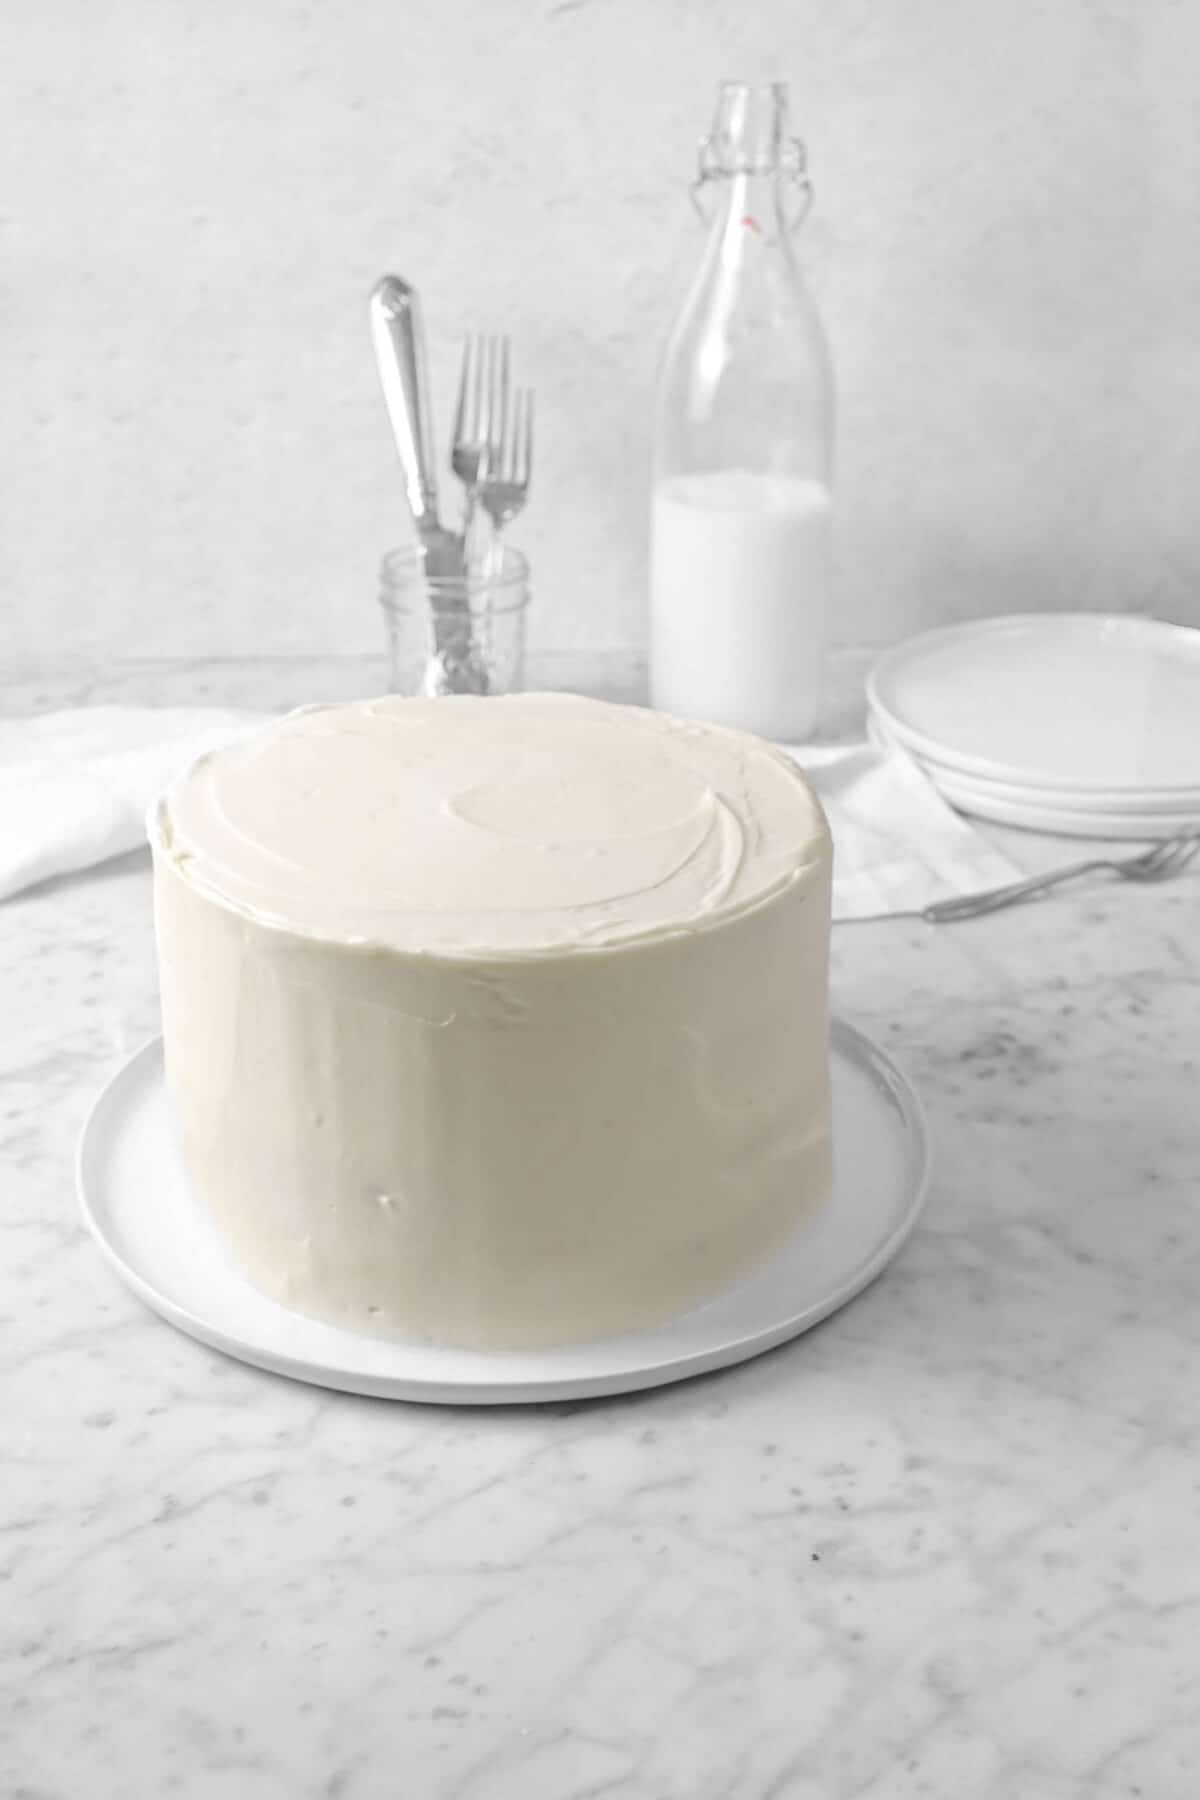 red velvet cake on a white plate with a jar of forks, a jug of milk, and a white napkin